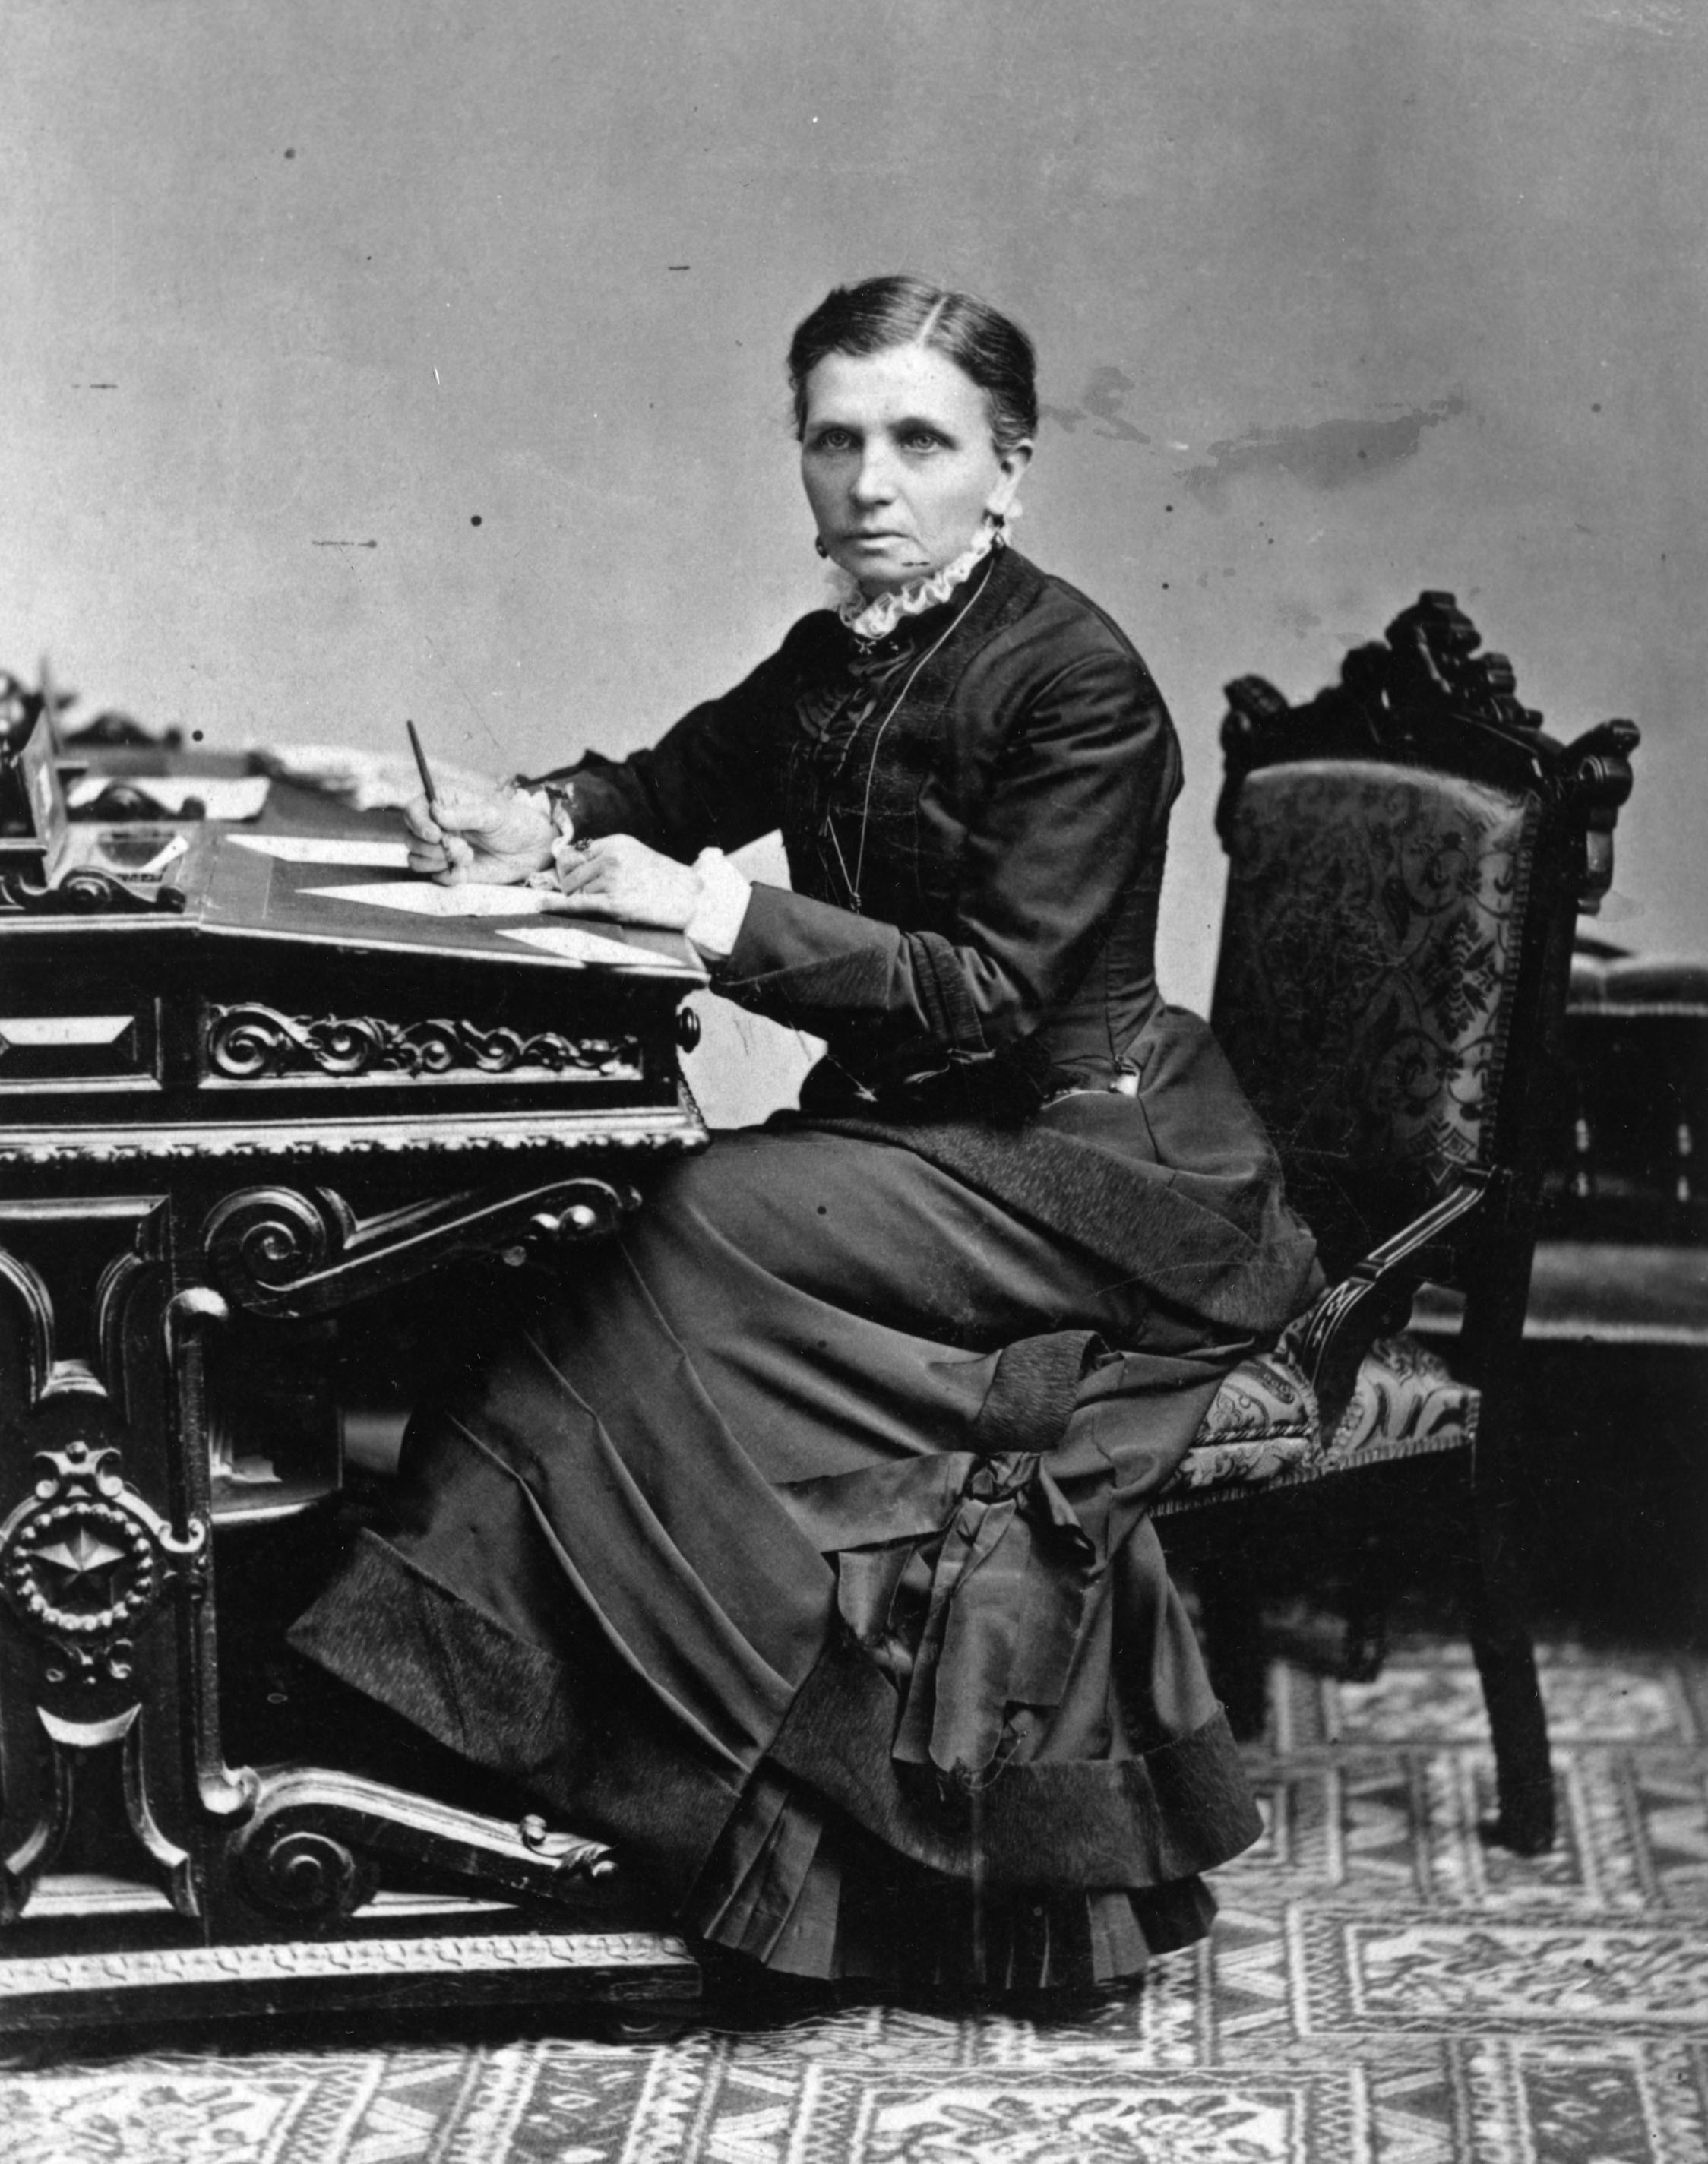 Emmeline B. Wells was a Latter-day Saint leader and women's rights activist.